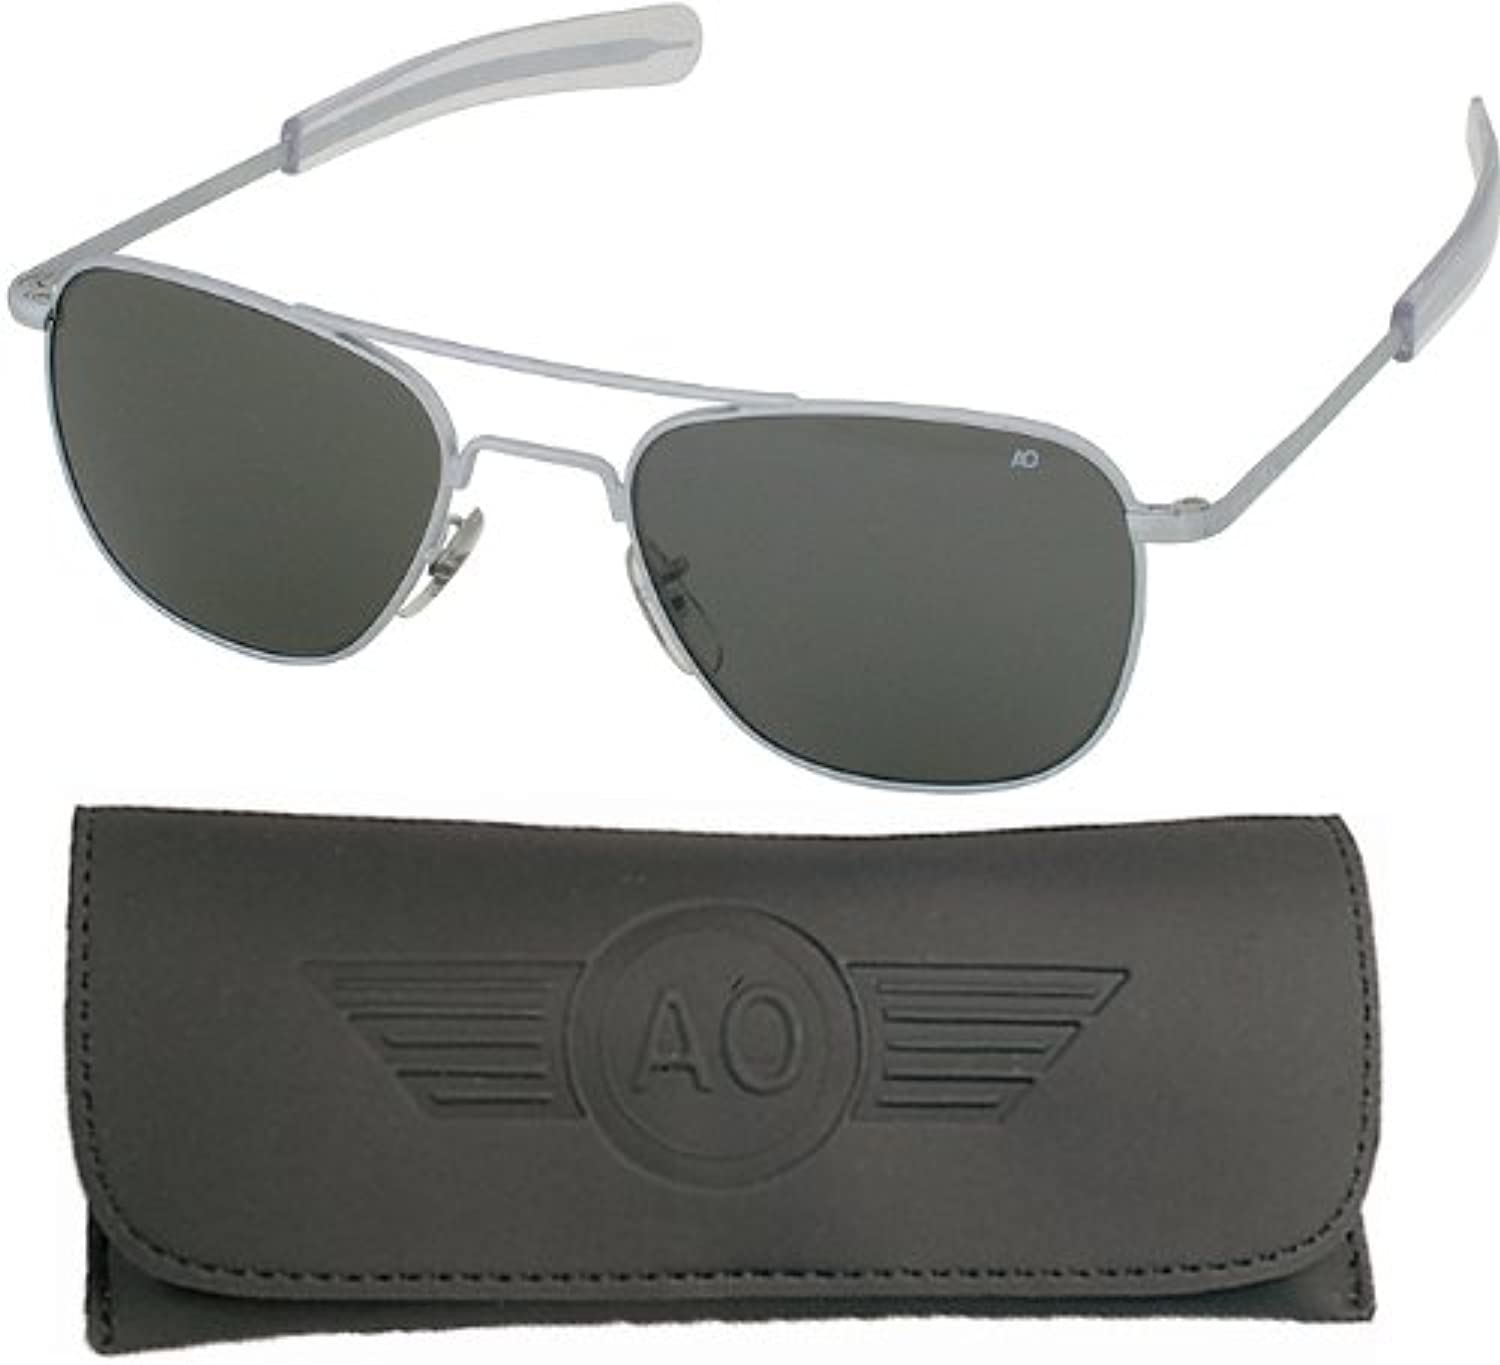 10700 GENUINE GOVERNMENT AIR FORCE PILOTS SUNGLASSES BY AO Eyeware